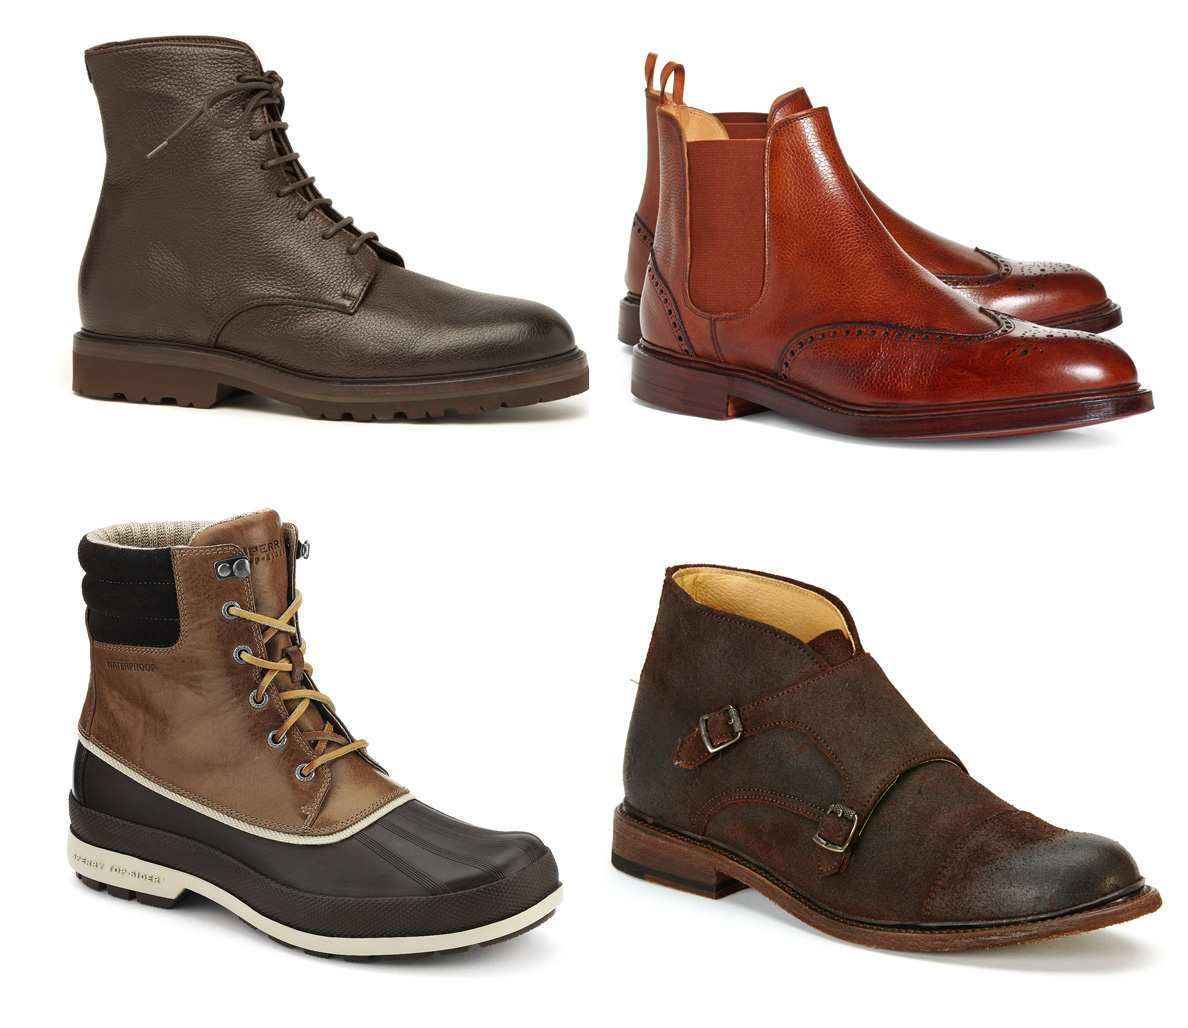 Winter stylish boots for guys